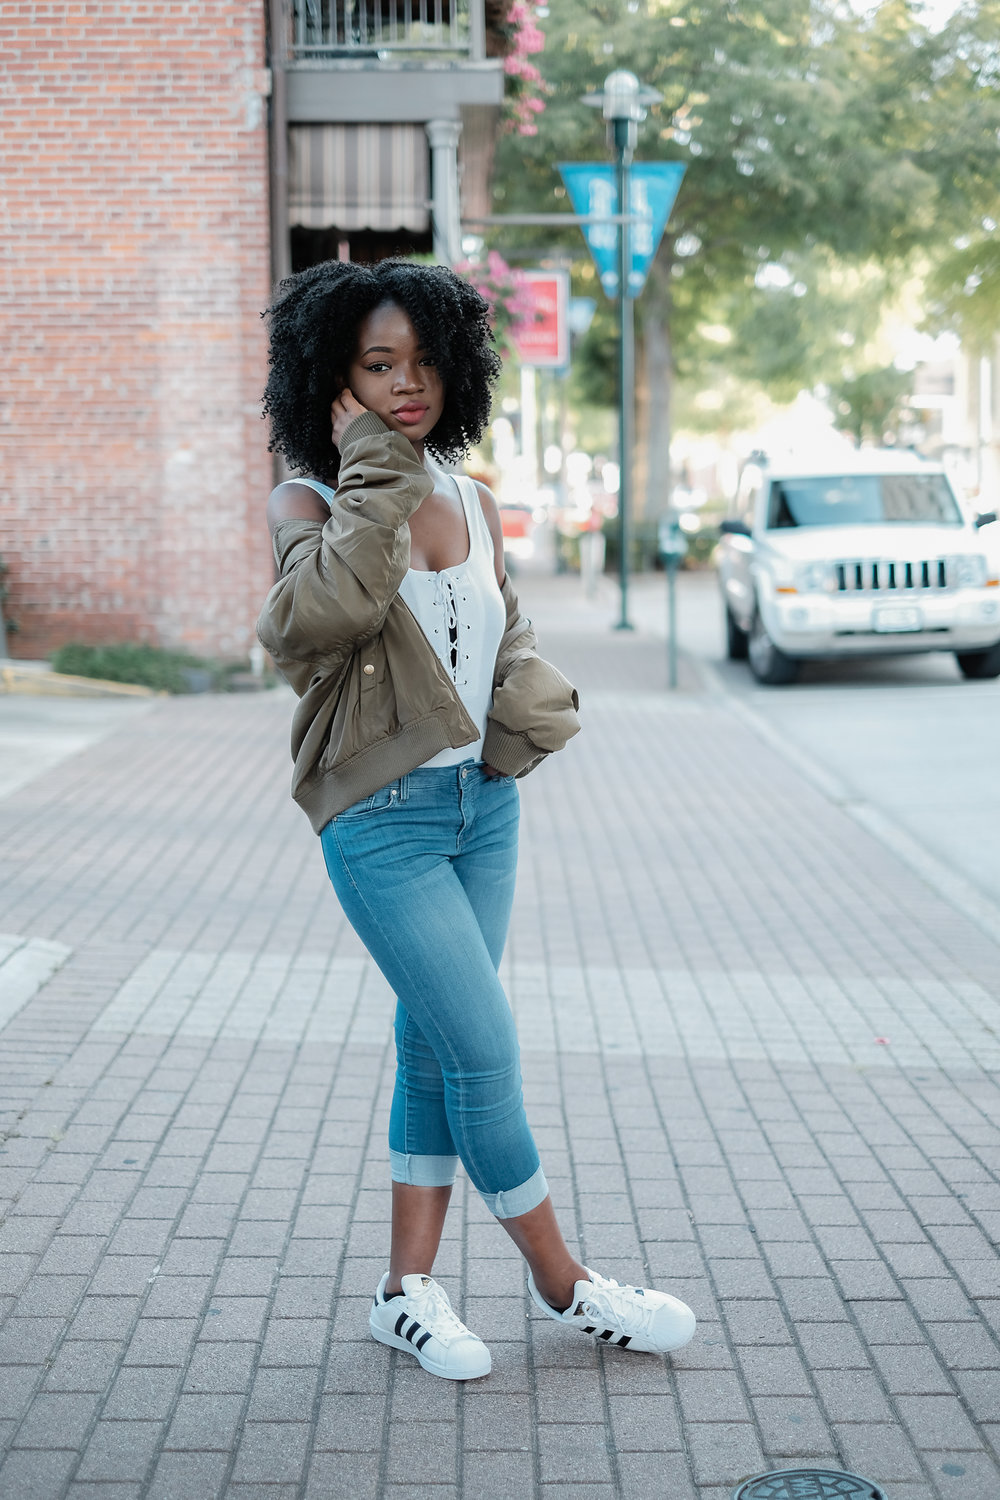 black girl in blue jeans and white top